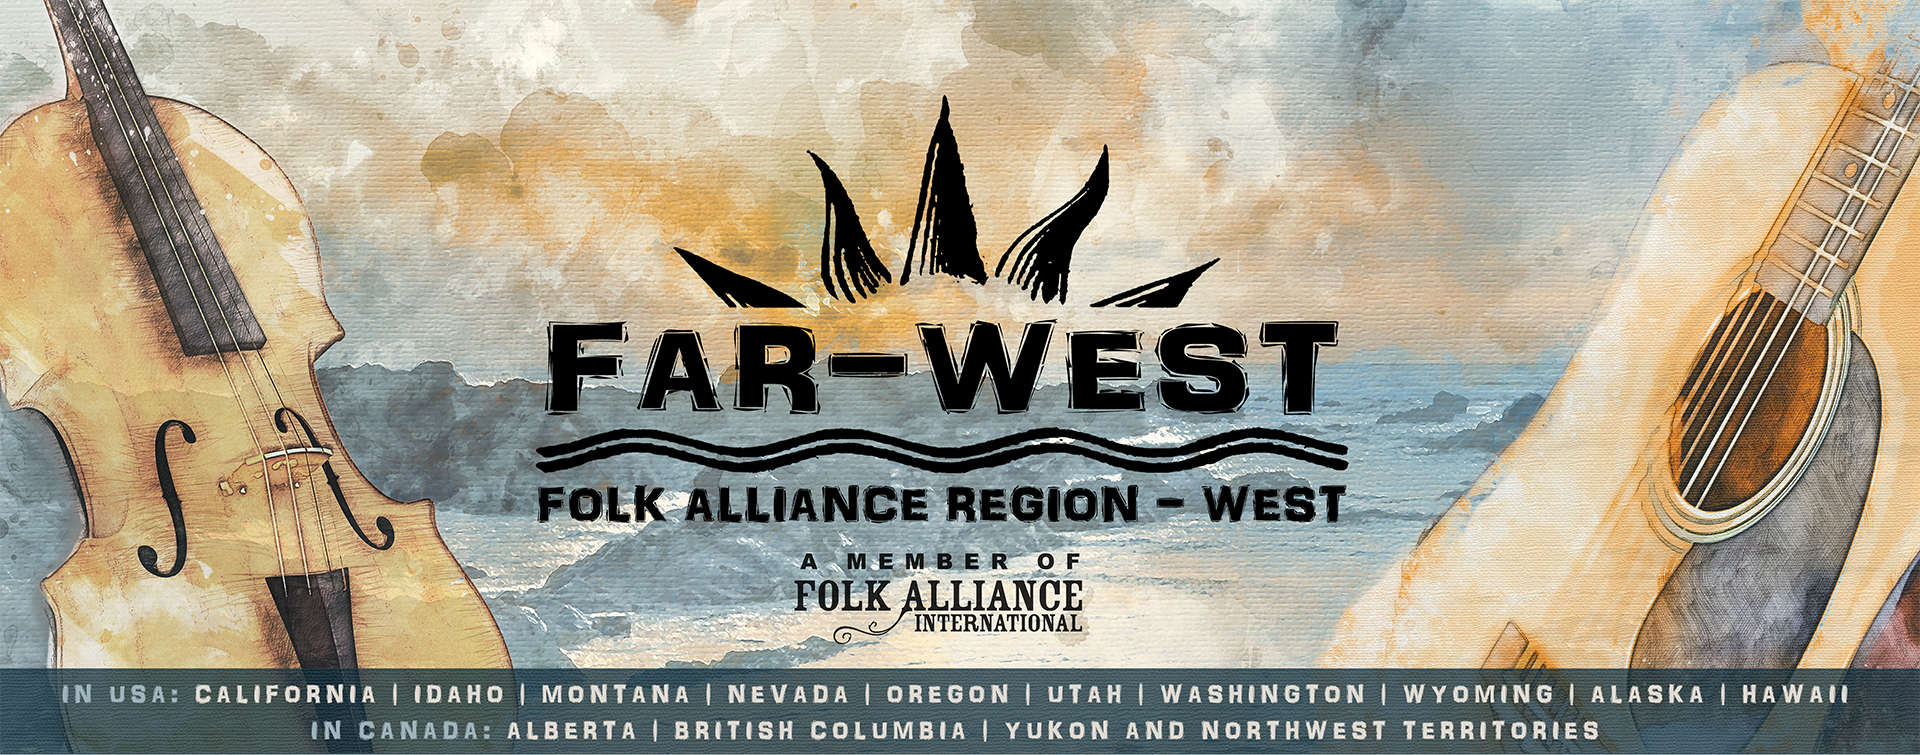 FAR-West's ongoing mission (since 2002) is to foster and promote traditional, contemporary and multicultural folk music, dance, storytelling and related performing arts in the North American West.  Our organization, open to artists, presenters and music supporters. welcomes a wide variety of styles, levels and disciplines, encouraging musical and cultural diversity and excellence. We are building a stronger folk community for all ages and we encourage you to join us as we share our performances, educational opportunities and more!